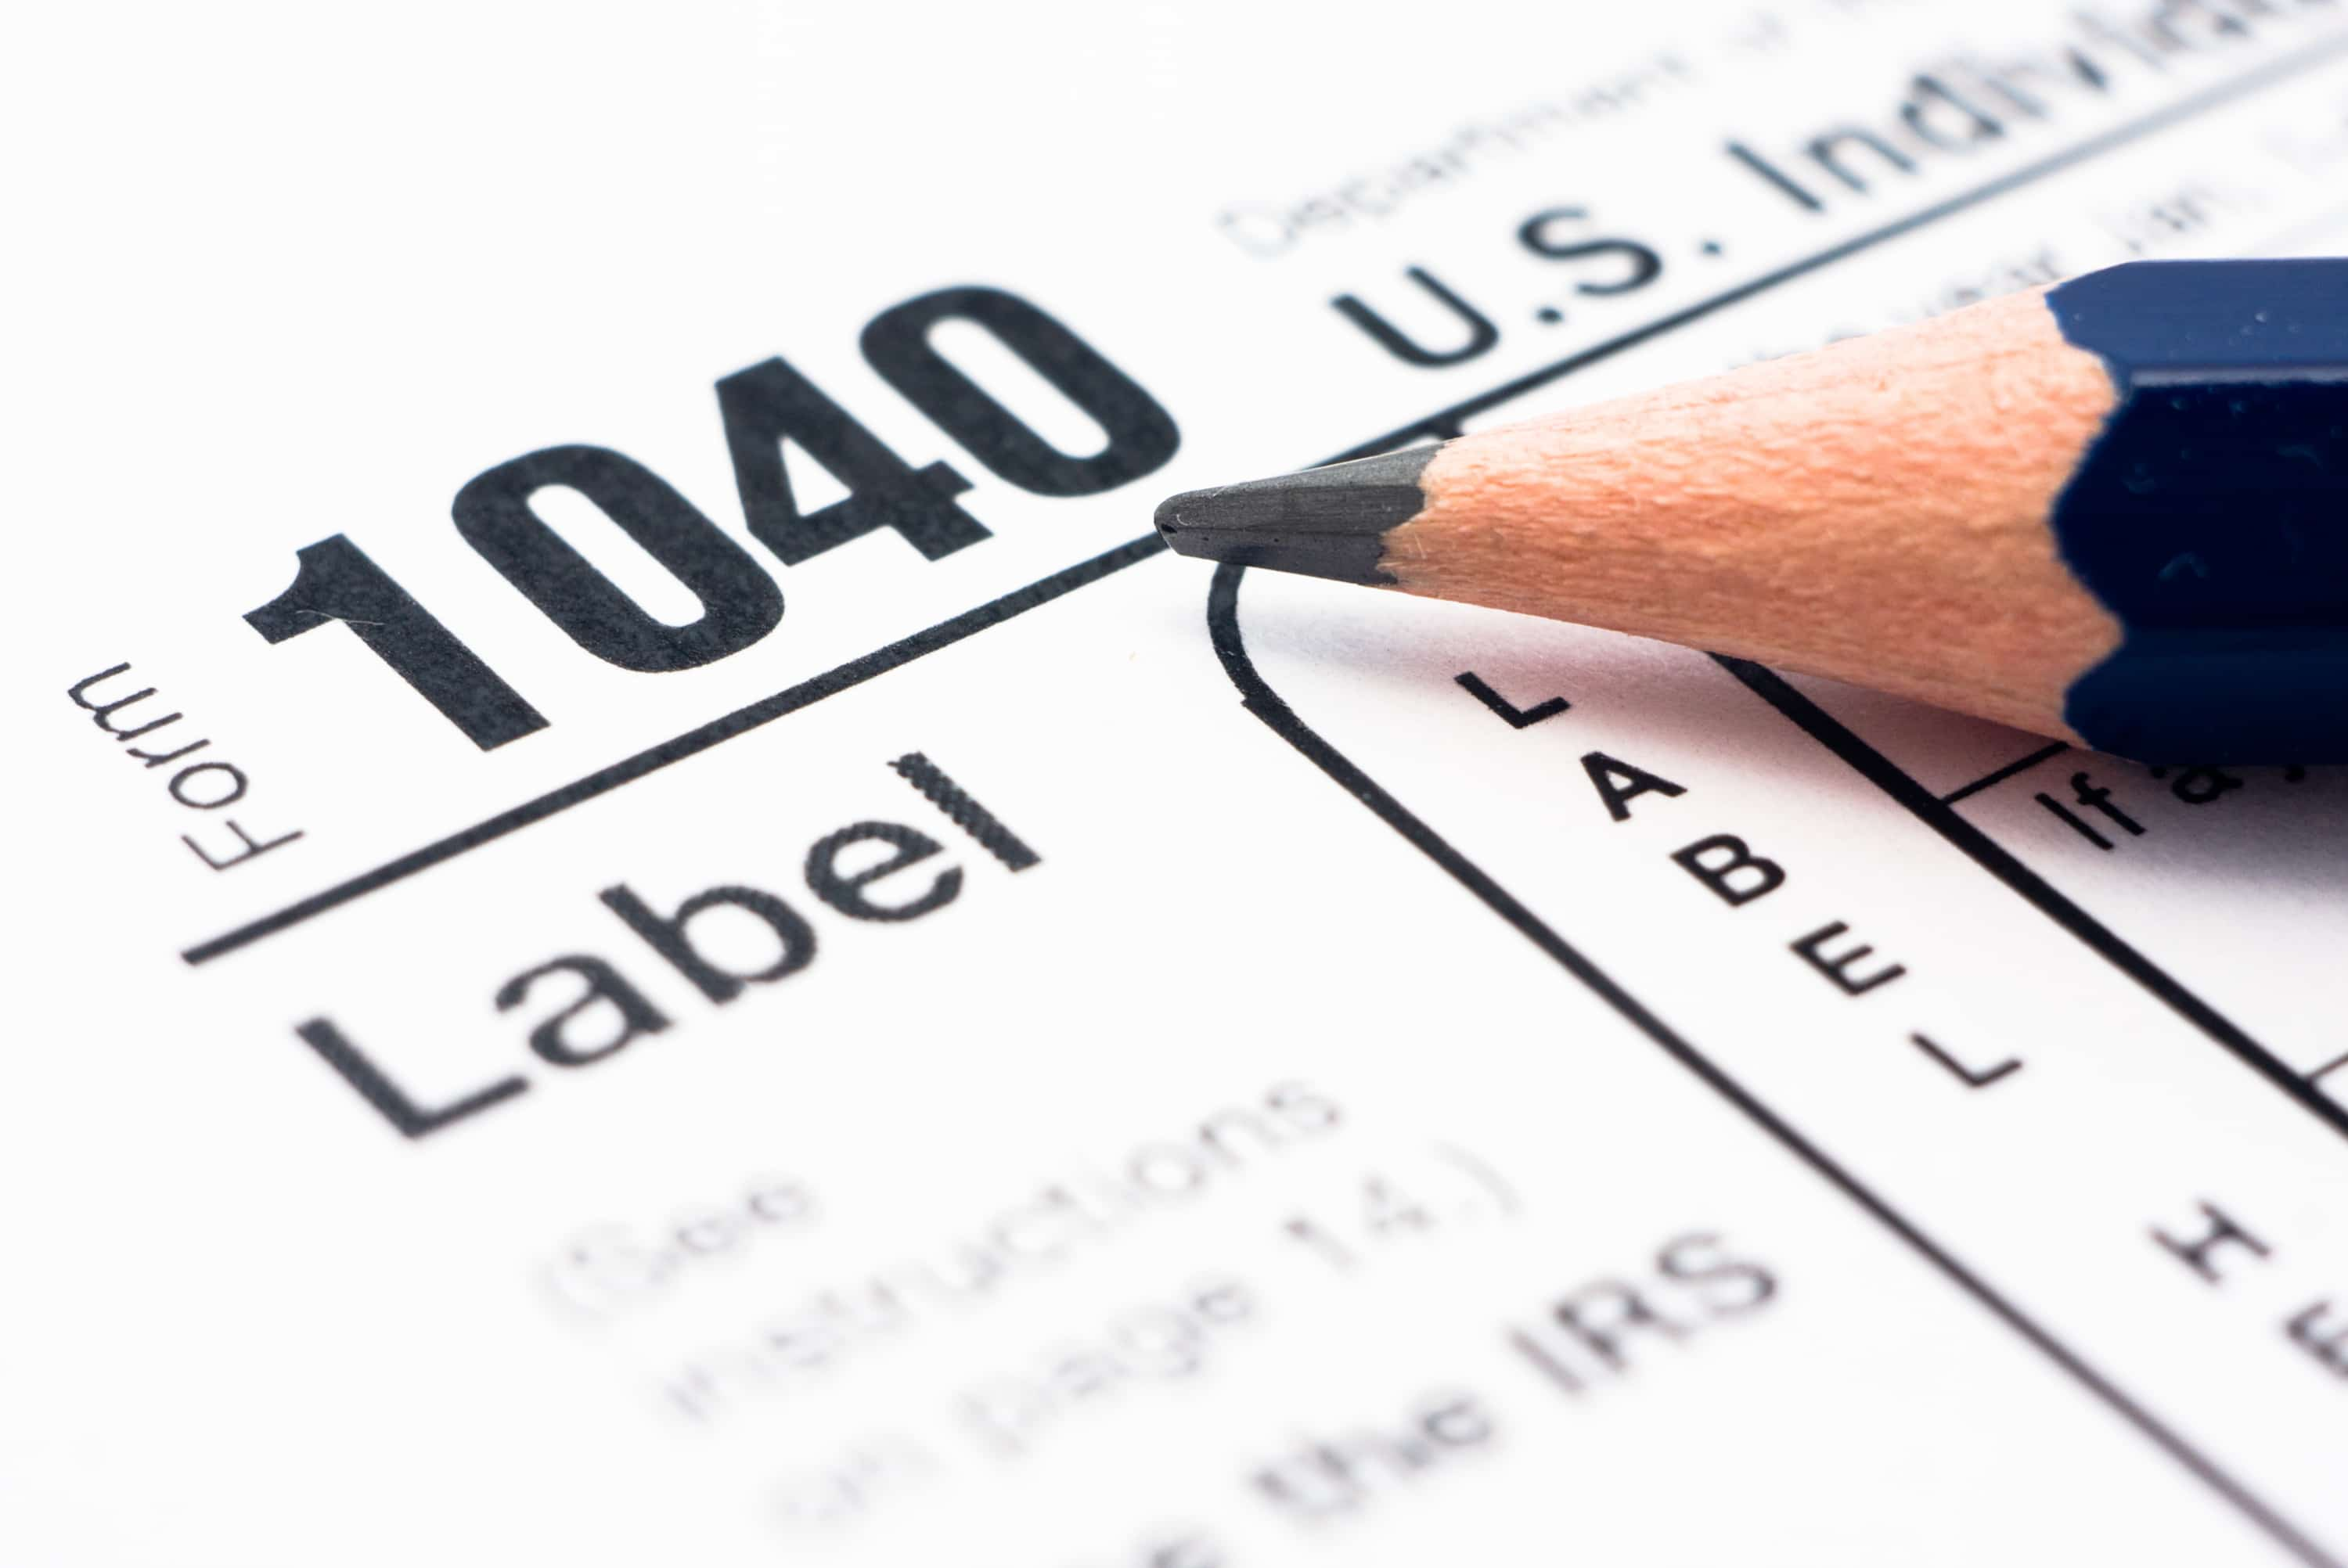 IRS Federal Tax Form 1040 - Types, Schedules & Instructions